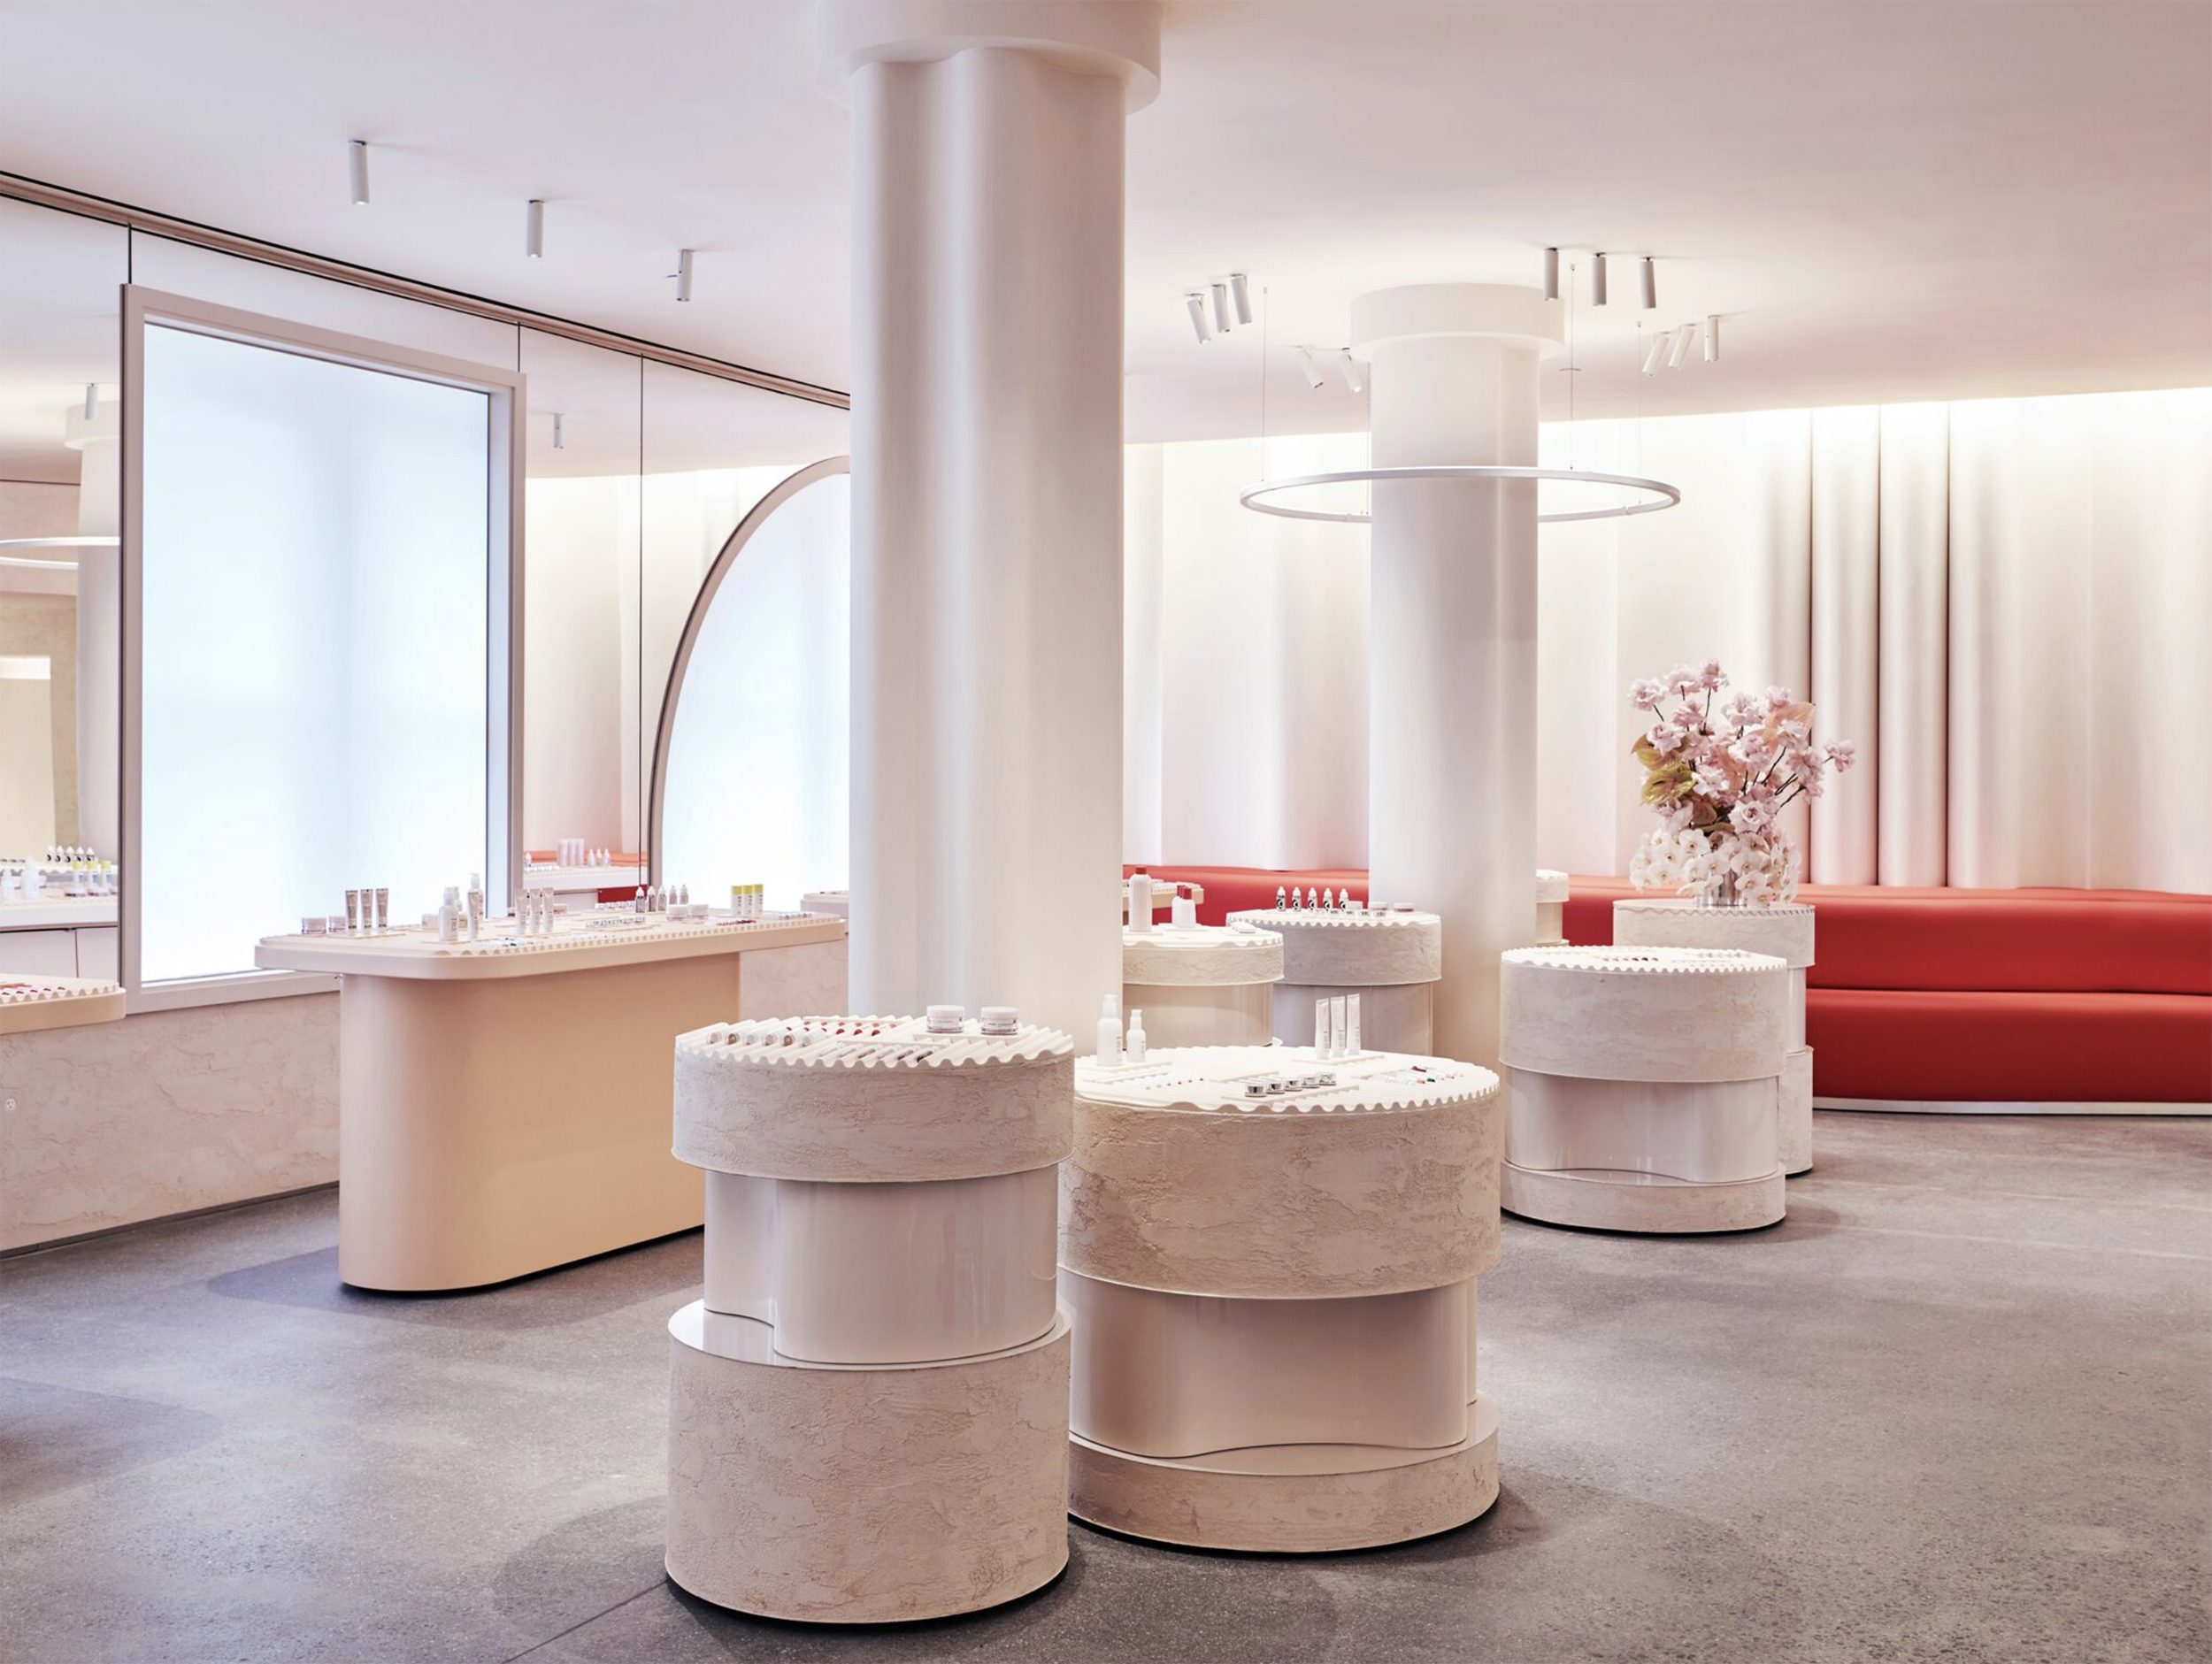 Glossier Opens New York Flagship Designed by Gachot Studios - Galerie